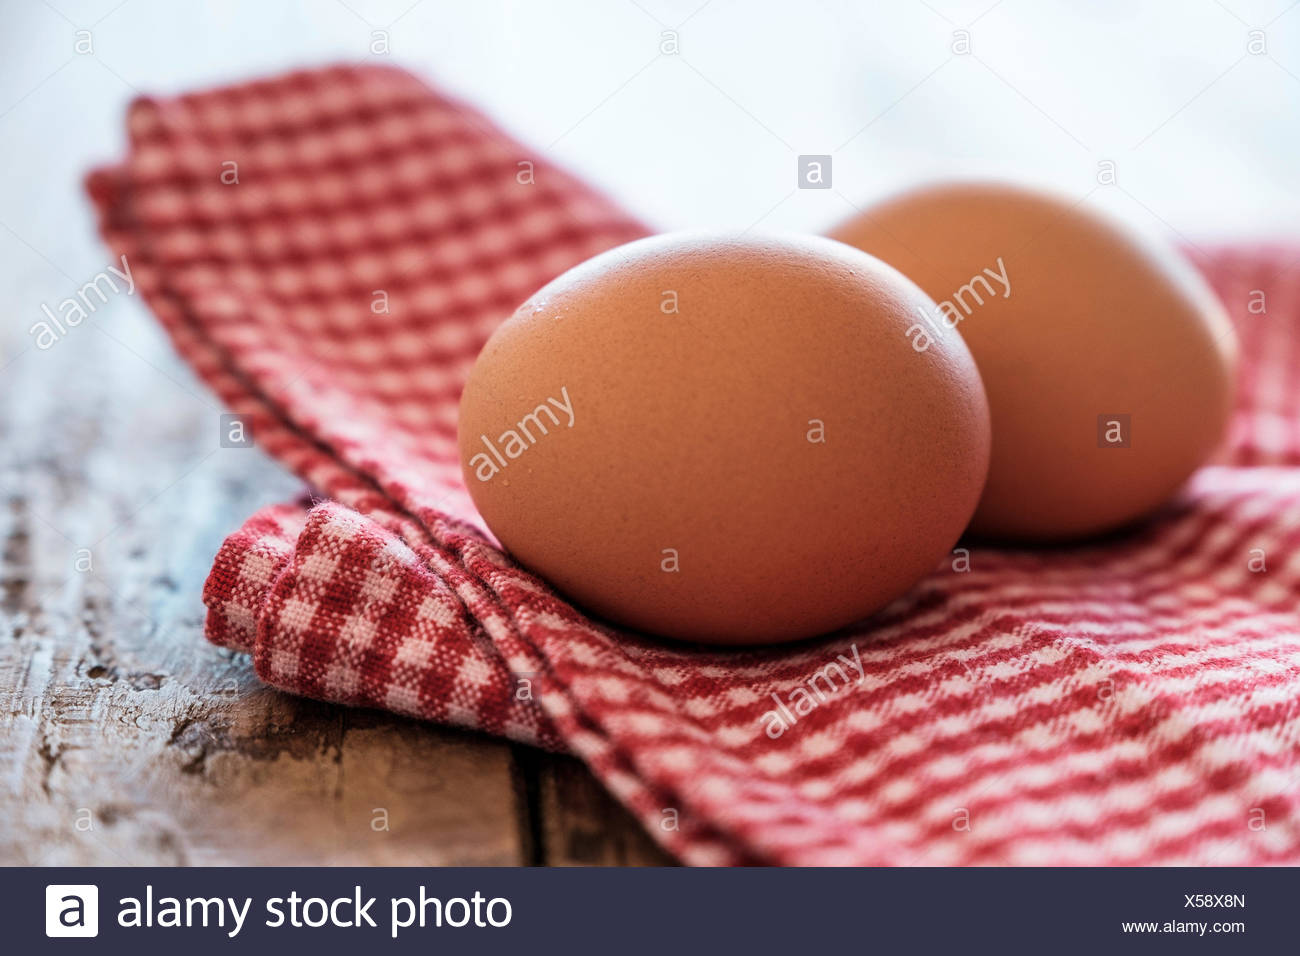 Eggs lying on tablecloth - Stock Image